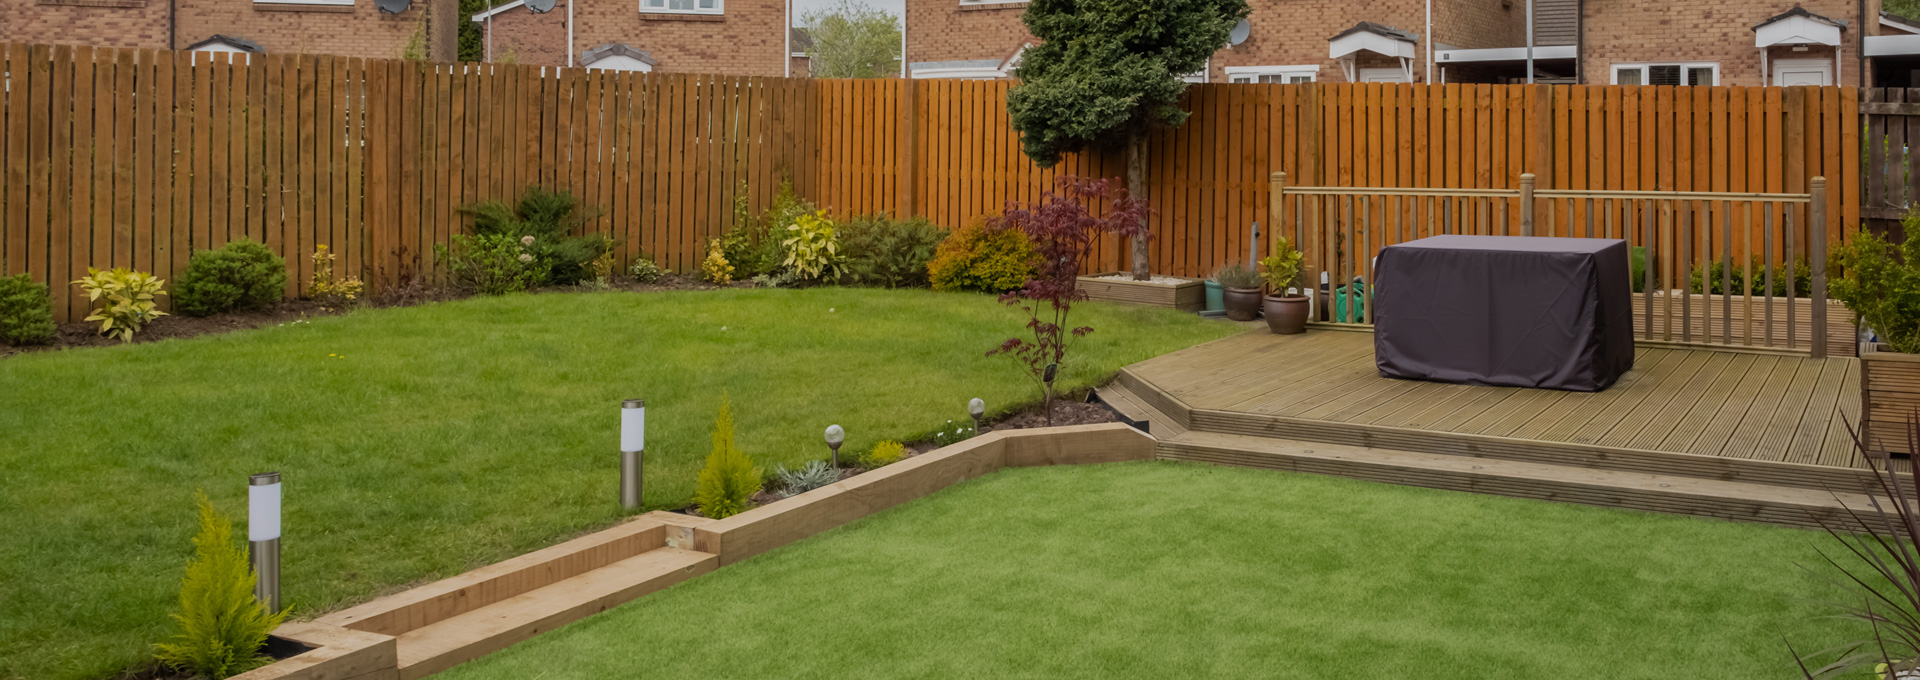 Landscaping project that included designing decking area & grass area in the garden.